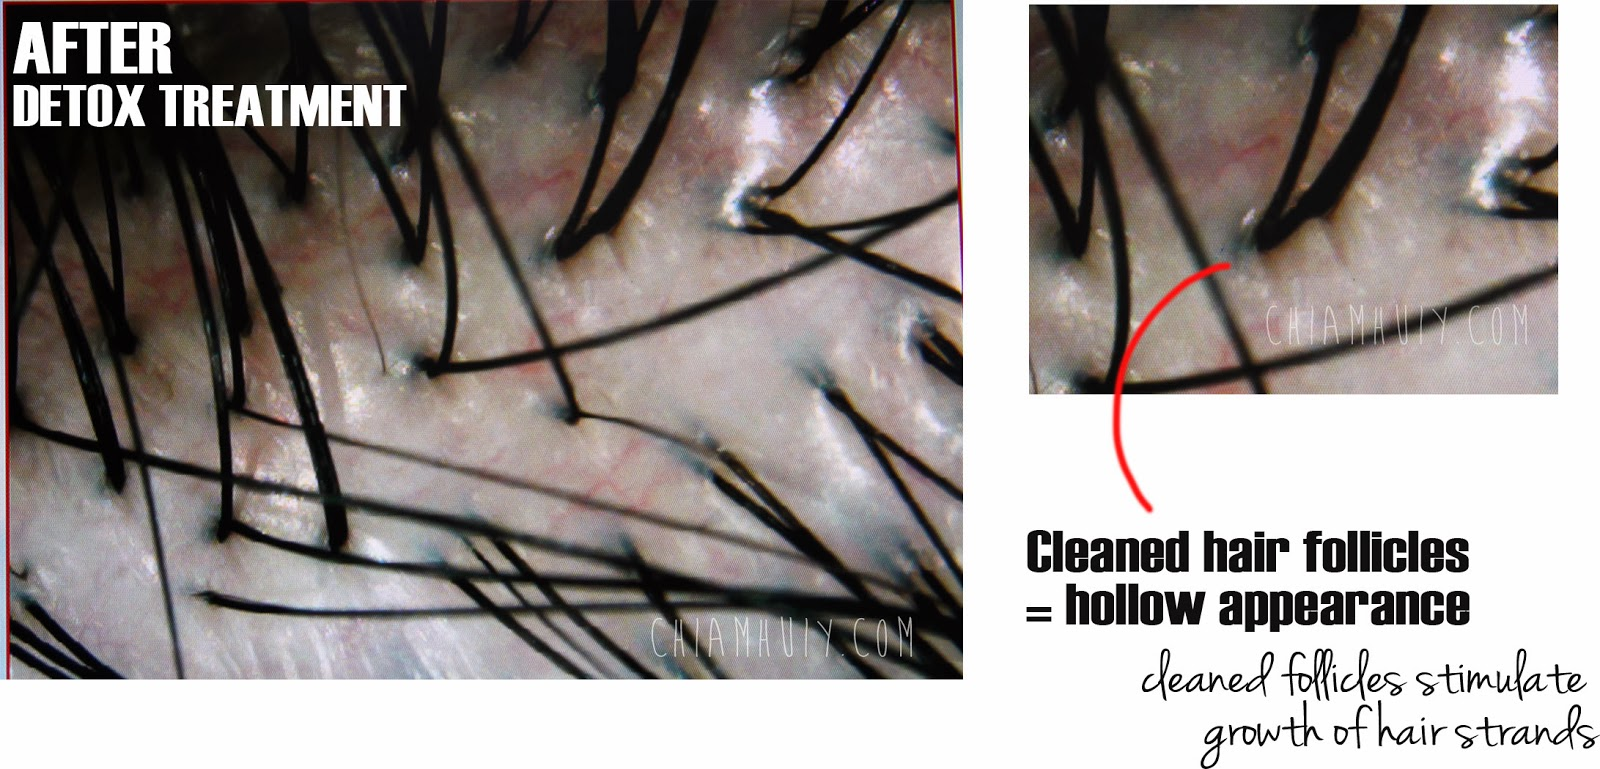 If The Follicles Are Clogged With Excessive Se Oil New Hair Growth Will Be Impeded